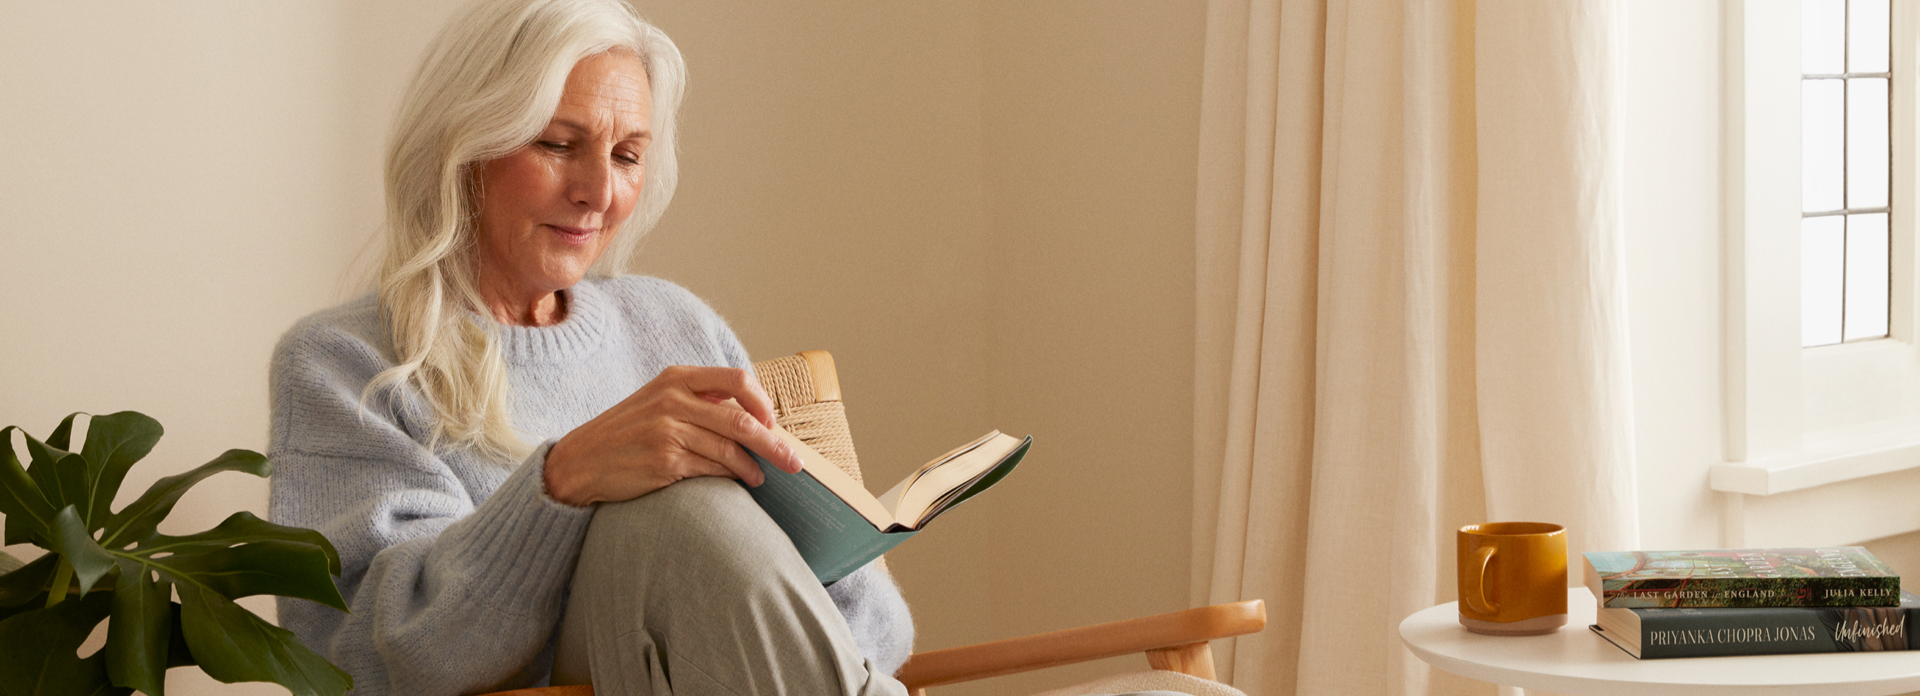 A woman sitting on a chair reading a book.